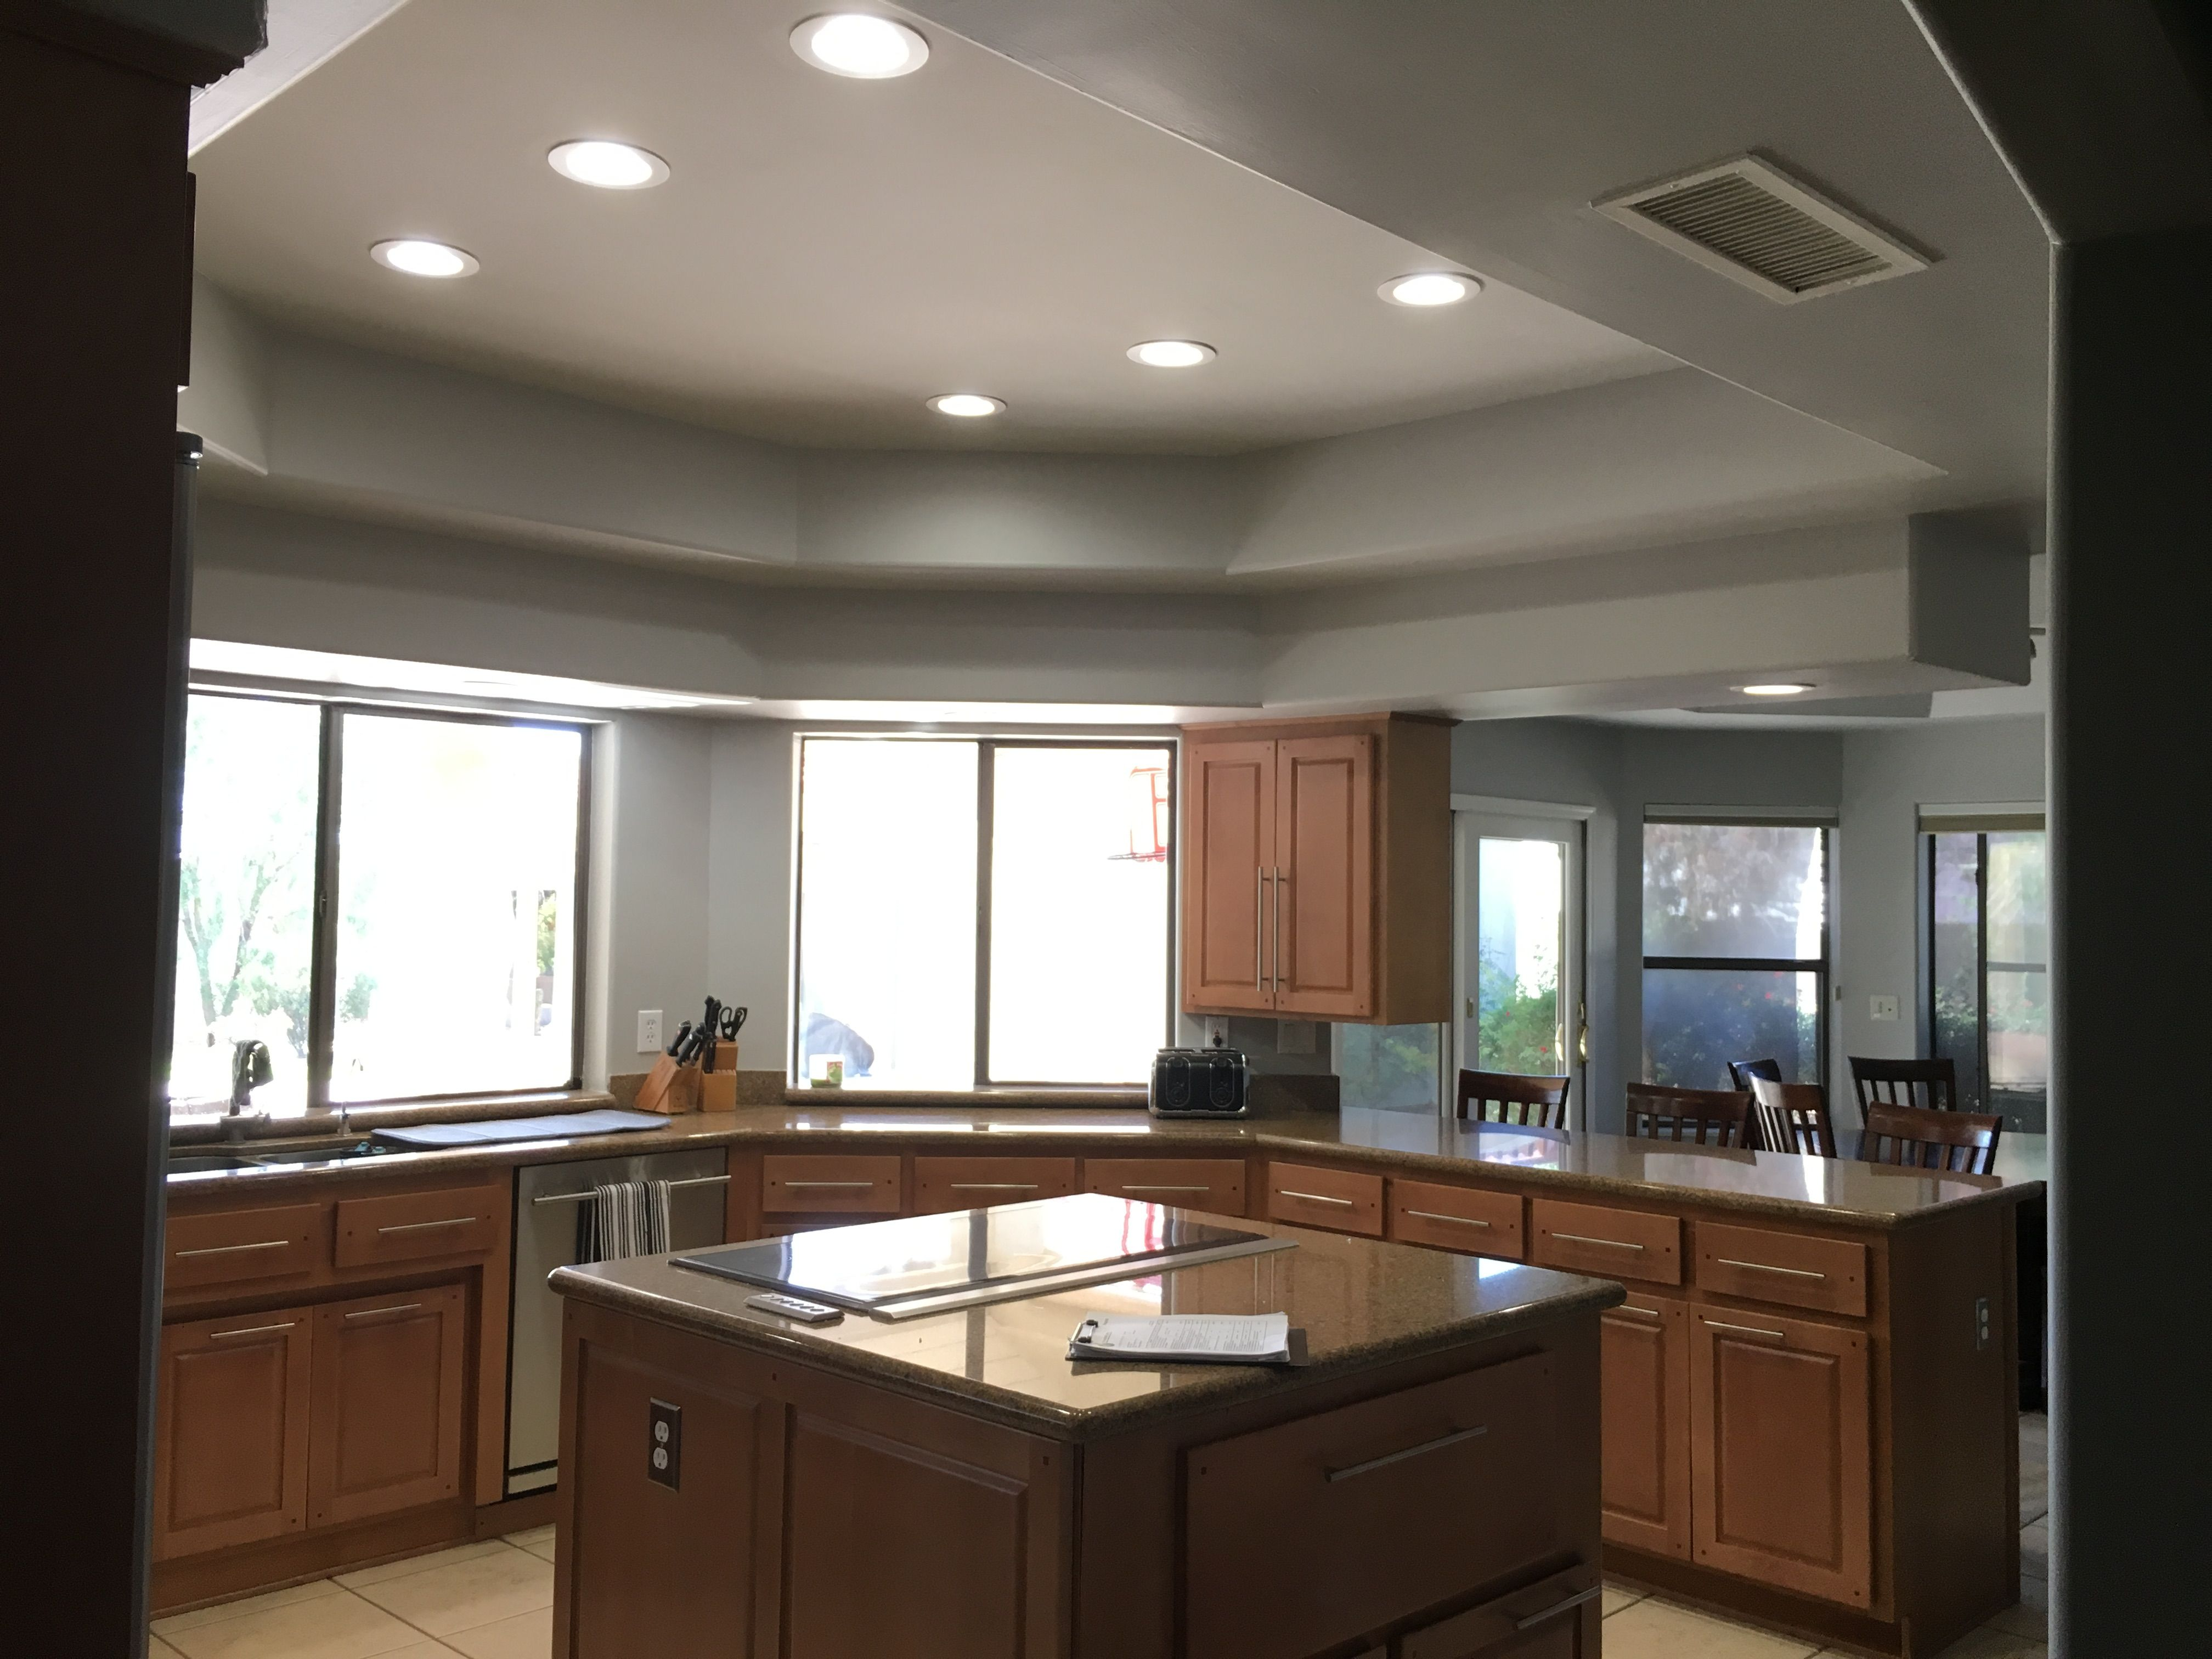 Installed 4000k Led S In A Kitchen With A Dimmer Led Recessed Lighting Led Can Lights Recessed Lighting